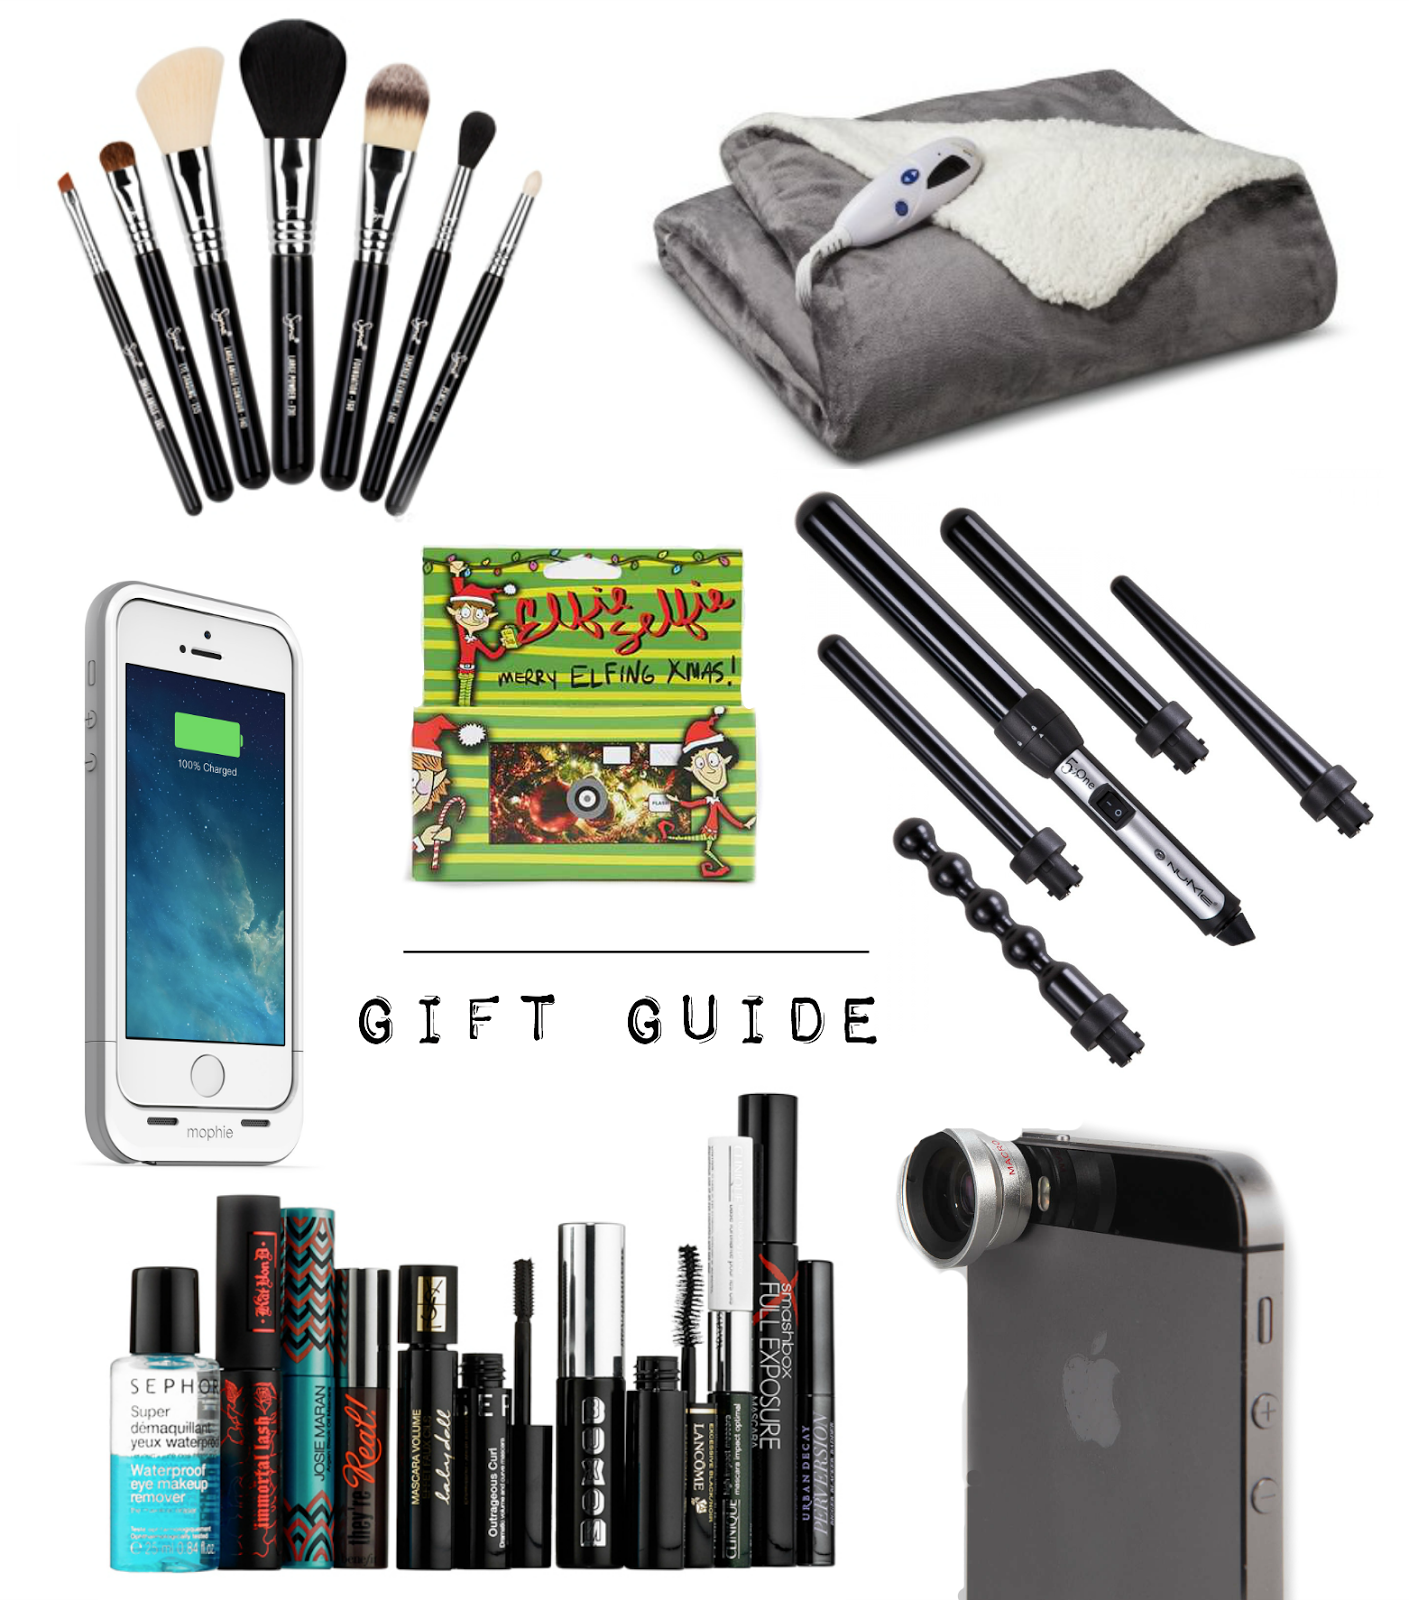 giveaway, makeup, makeup brushes, iPhone, mophie, urban outfitters, camera, lens, curling wand, nume, blanket,